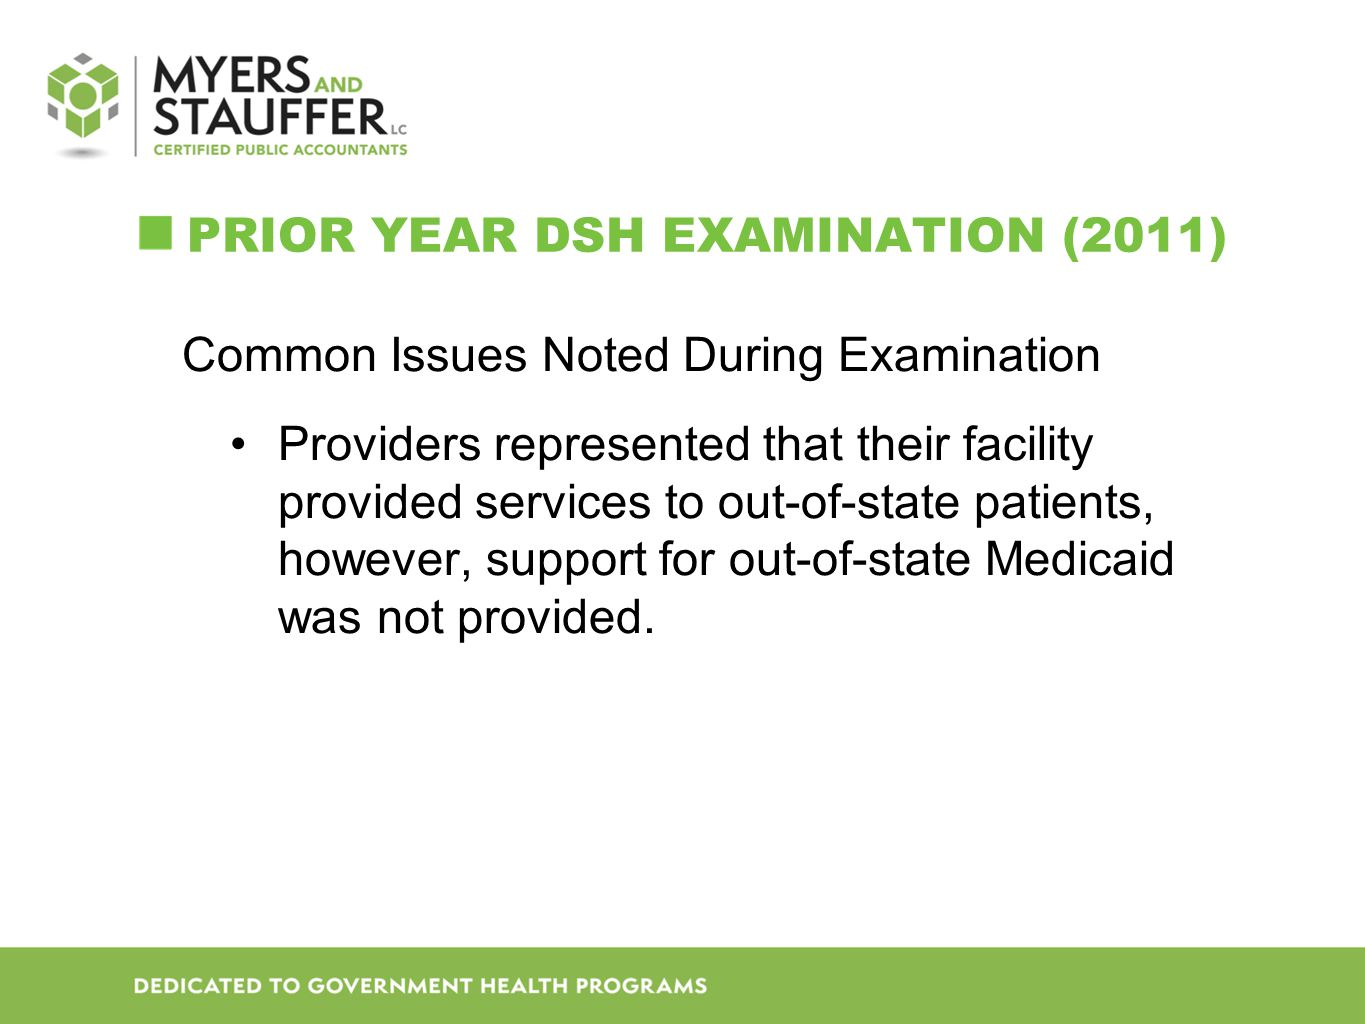 PRIOR YEAR DSH EXAMINATION (2011) Common Issues Noted During Examination Providers represented that their facility provided services to out-of-state patients, however, support for out-of-state Medicaid was not provided.